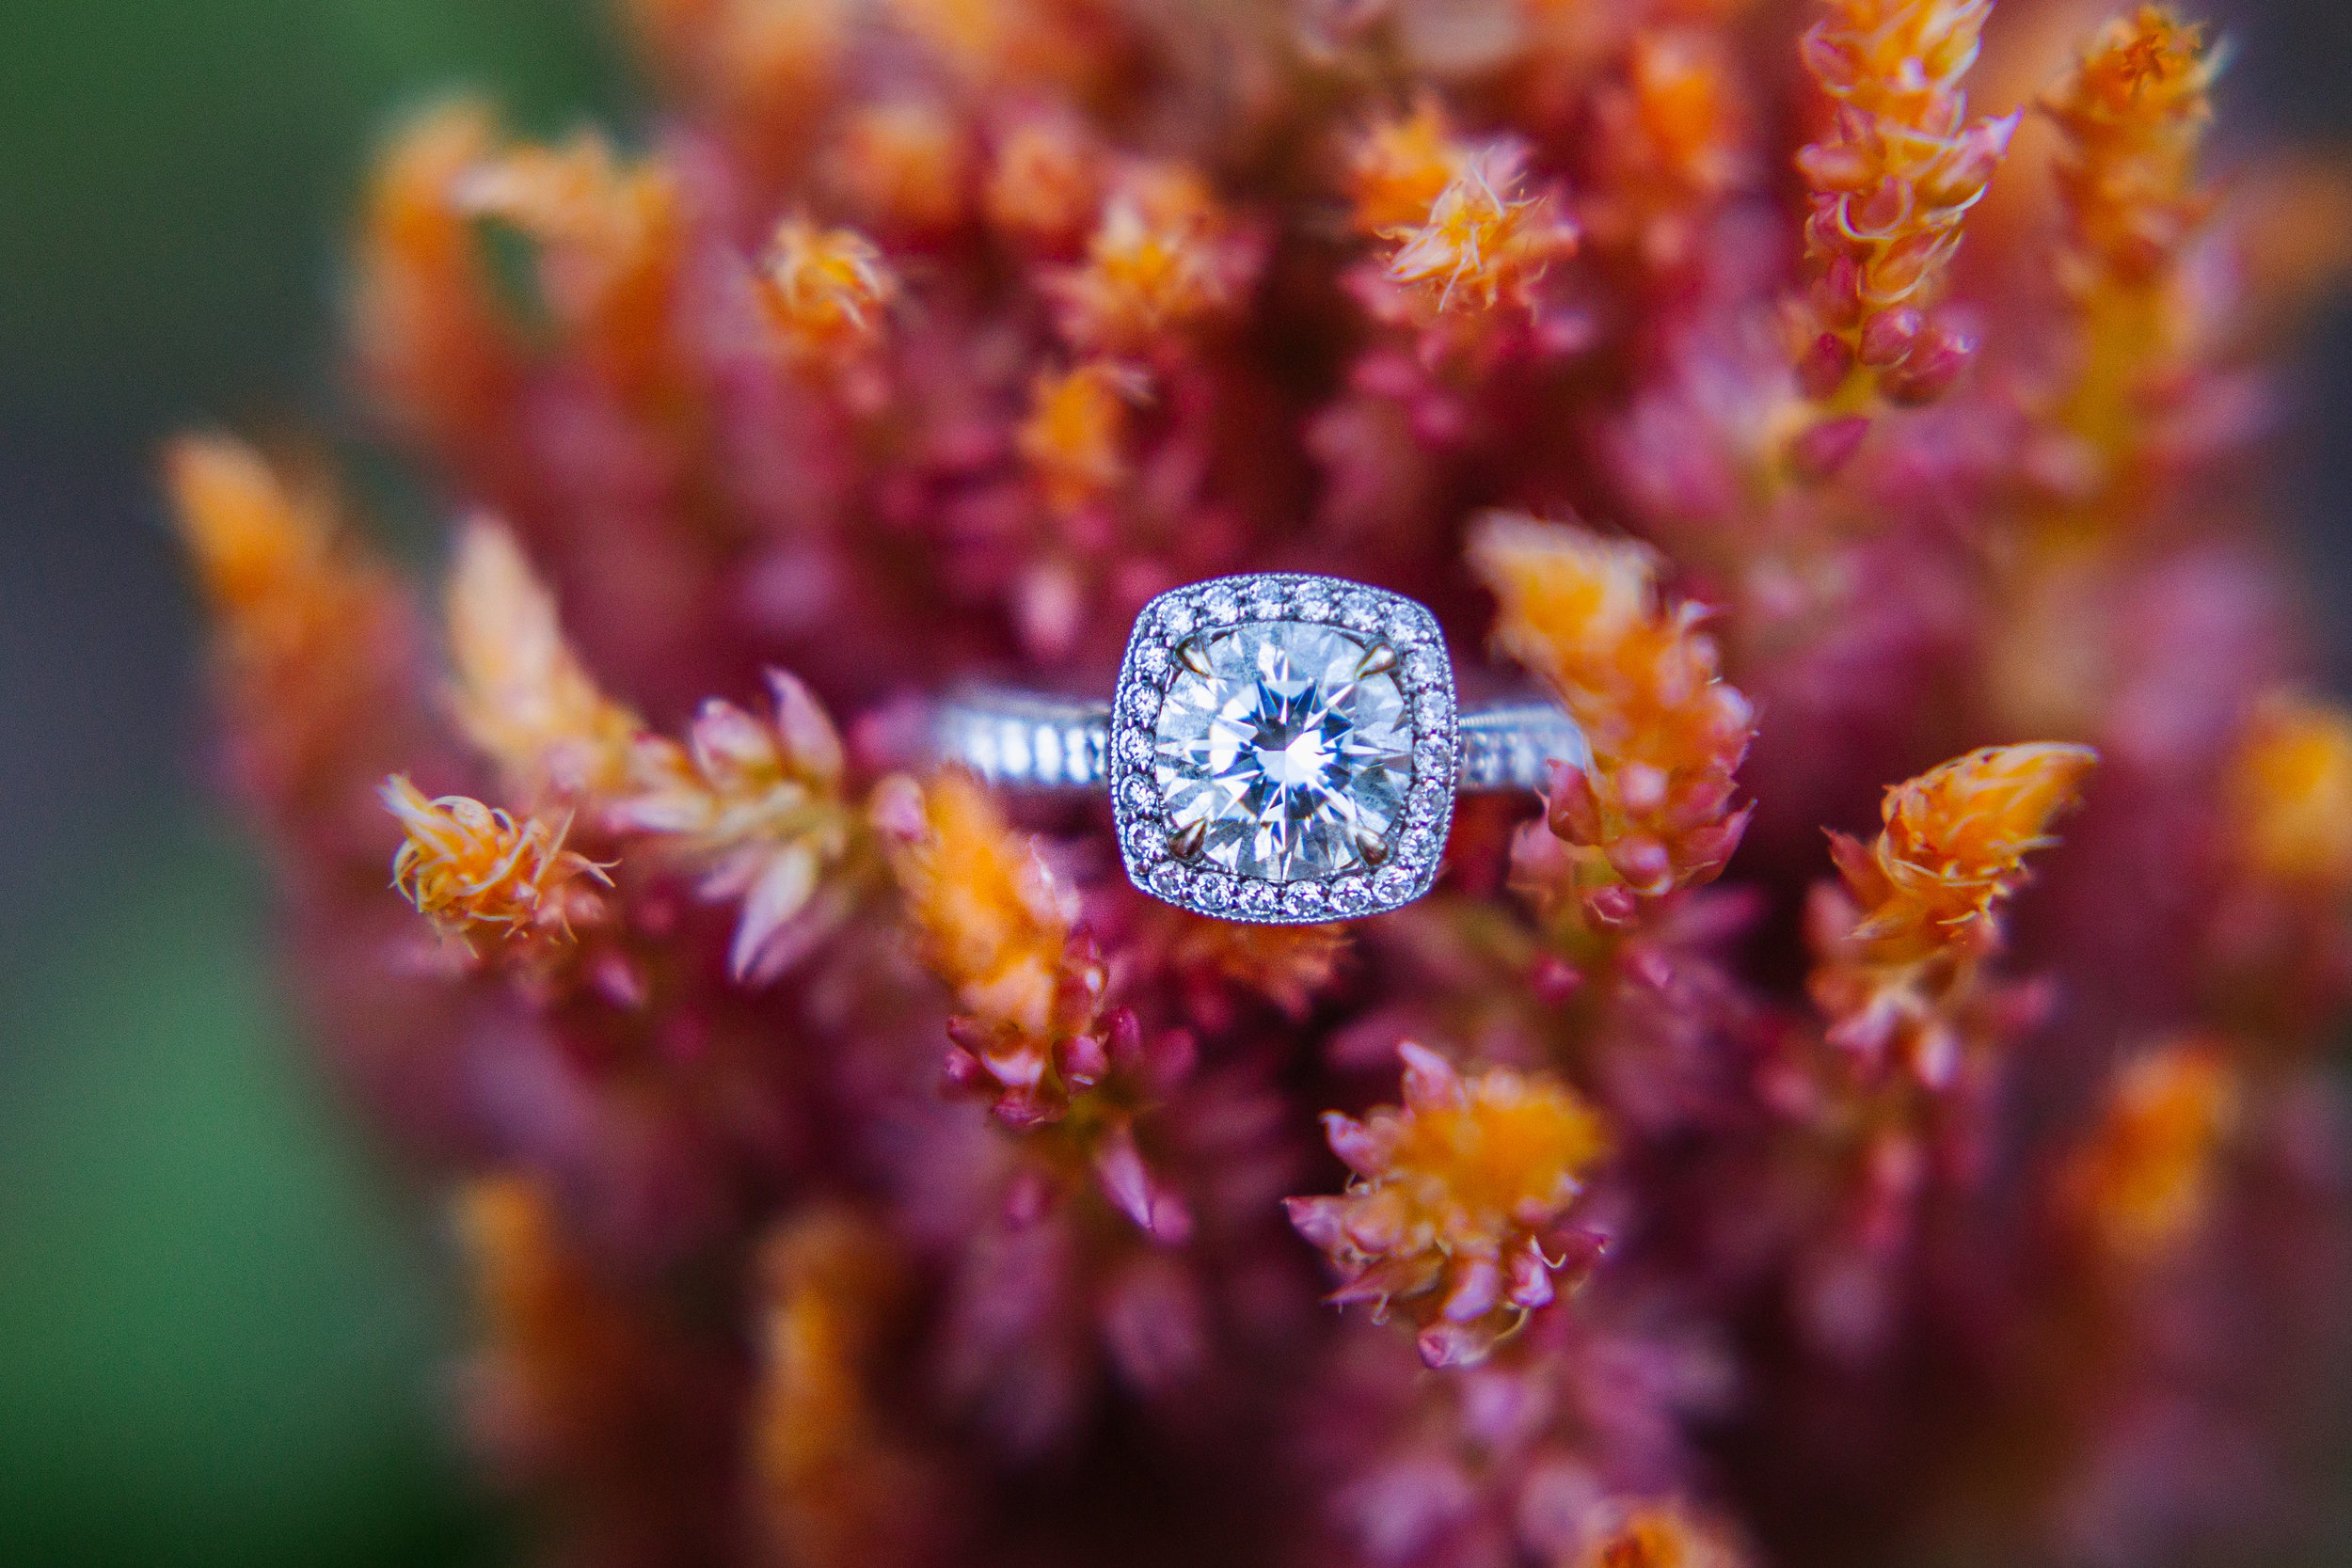 baltimore-engagement-solitaire-ring.jpg